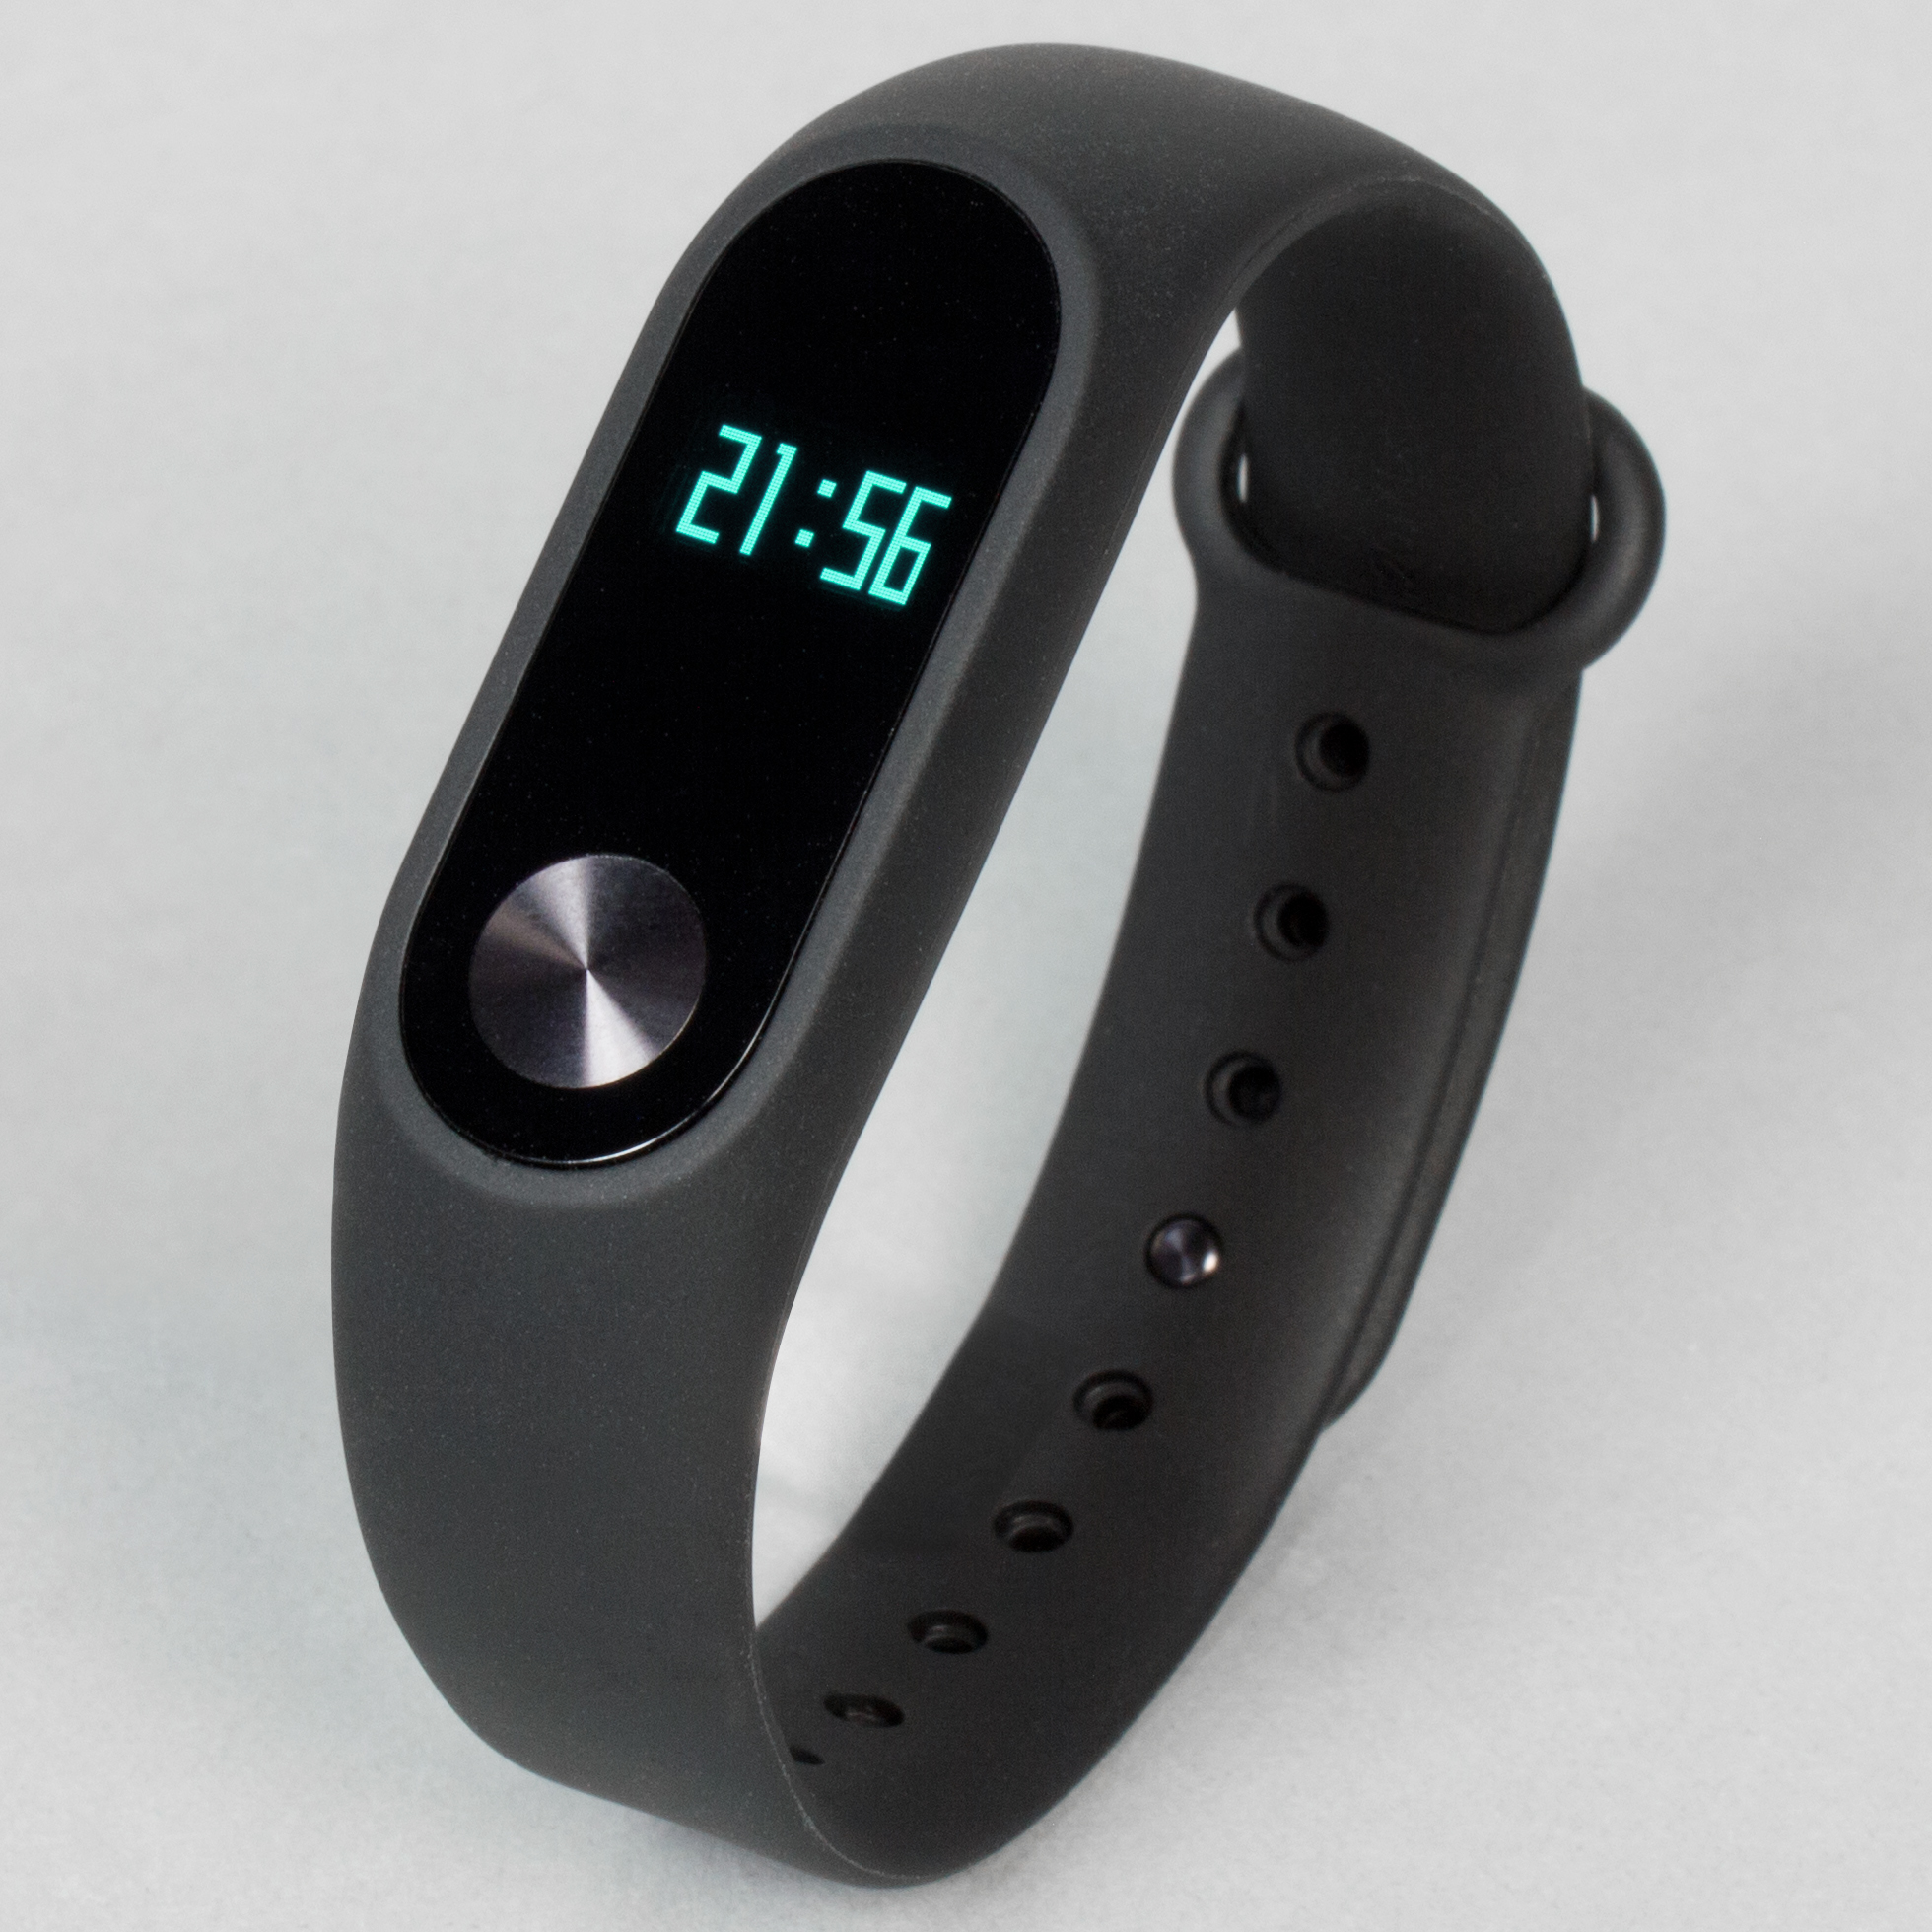 xiaomi mi band 2. Black Bedroom Furniture Sets. Home Design Ideas